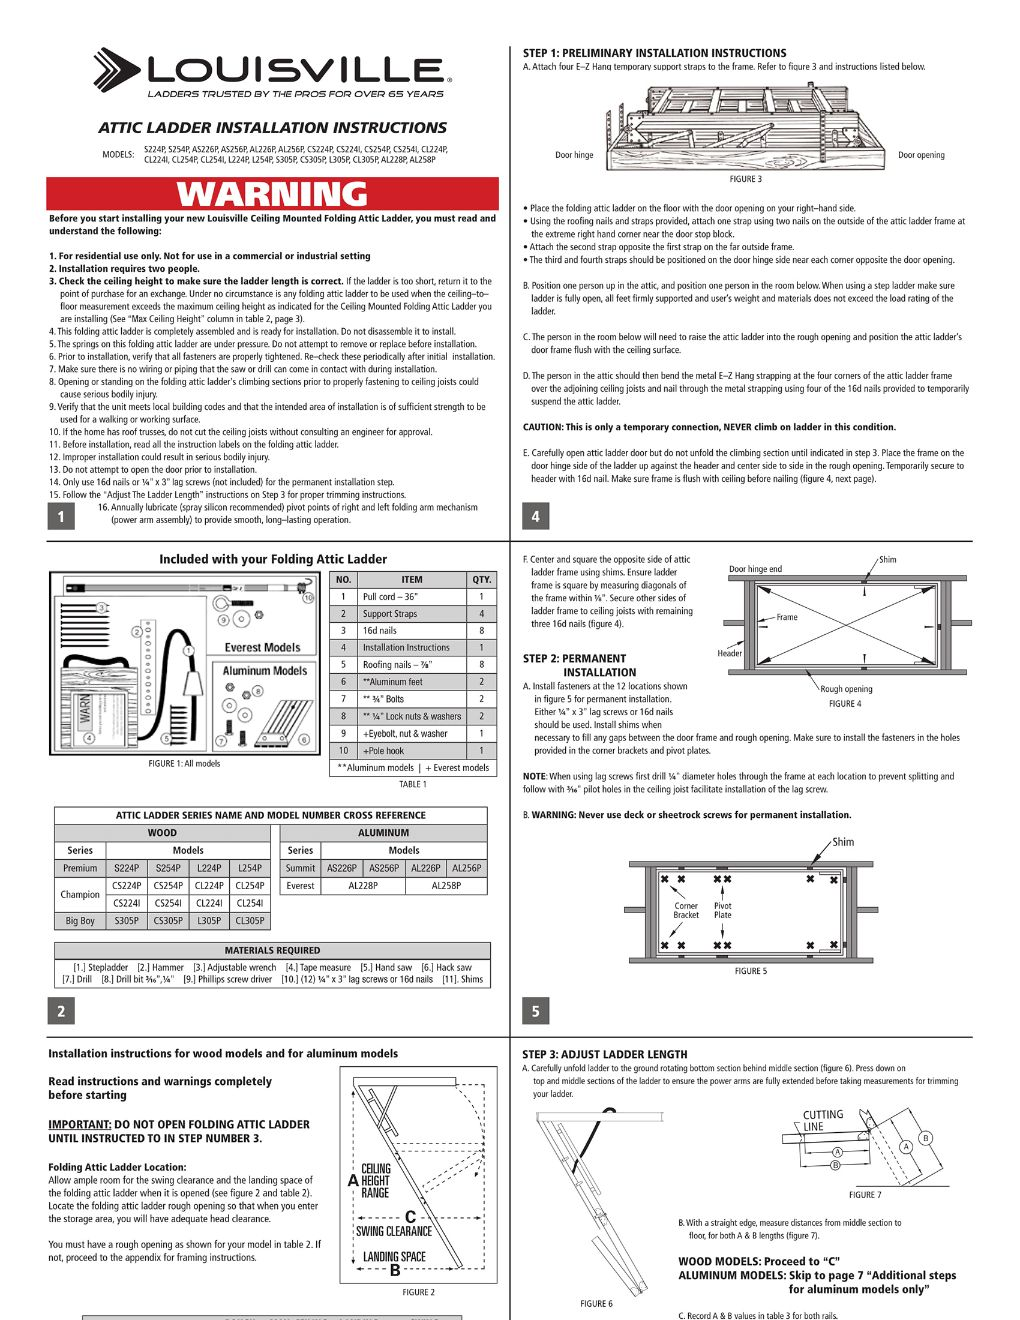 AL228P and AL258P Attic Ladders Installation Instructions Marketing Material Image